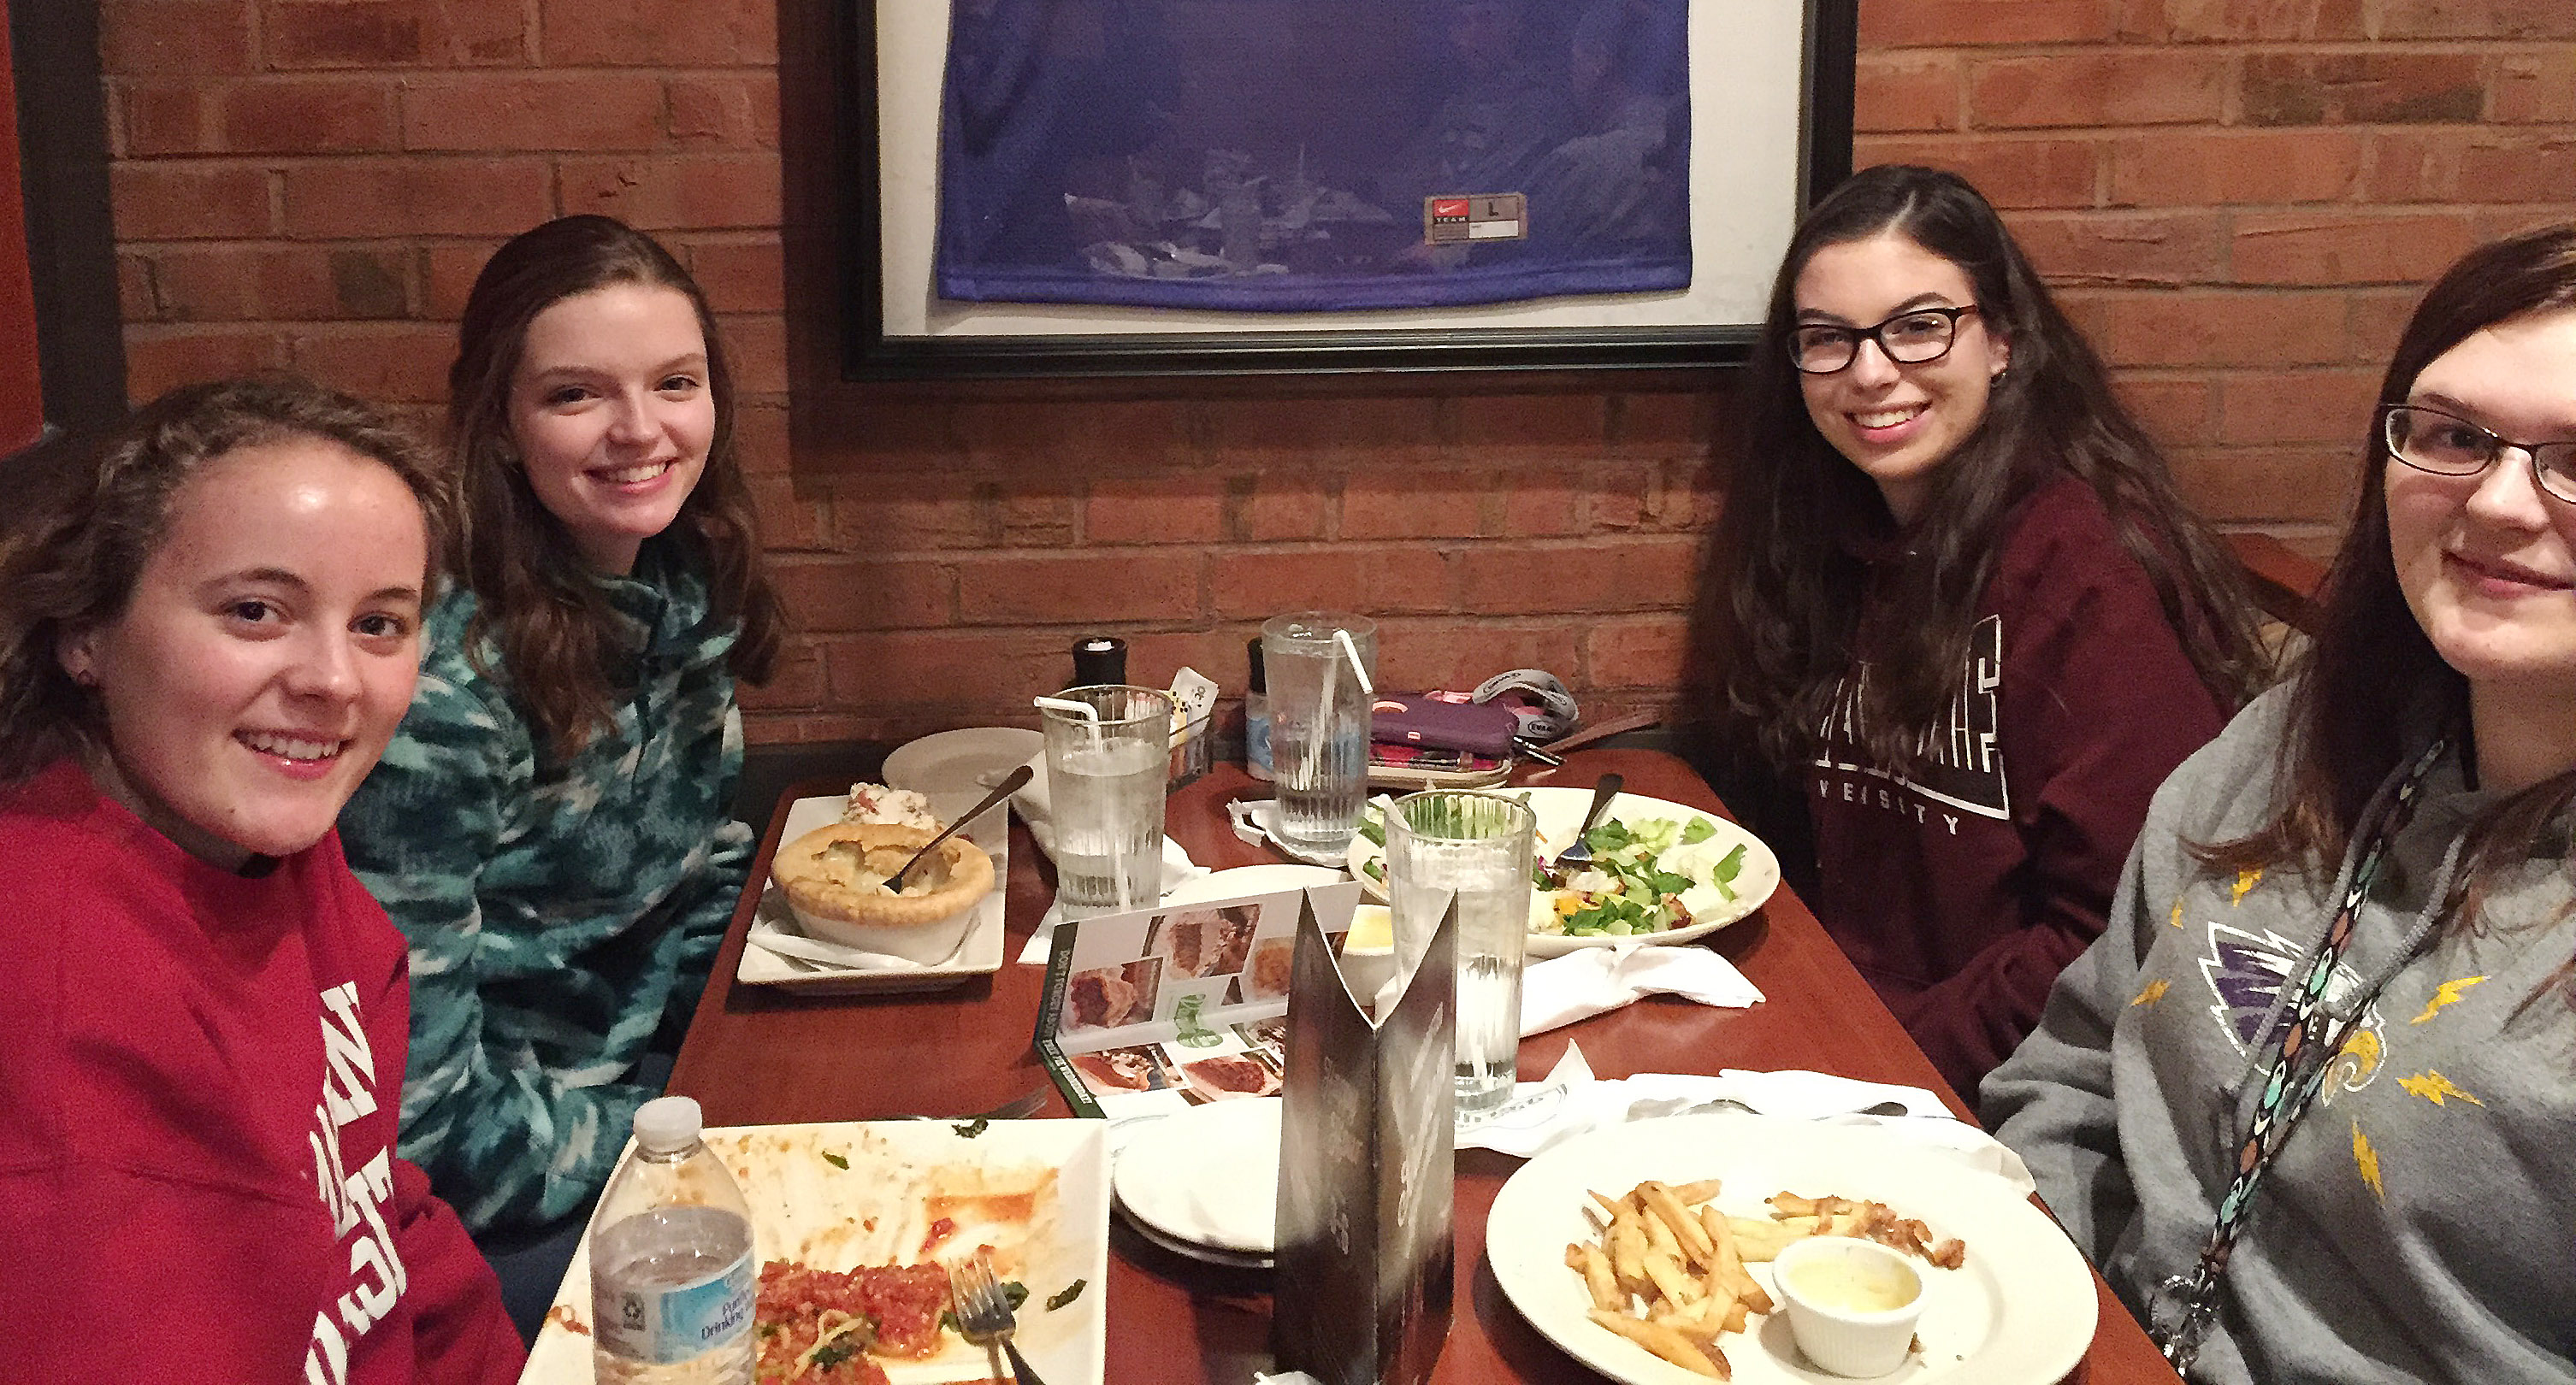 CHS seniors, from left, Caroline McMahan, Blair Lamb, Laura Lamb and Vera Brown have dinner.